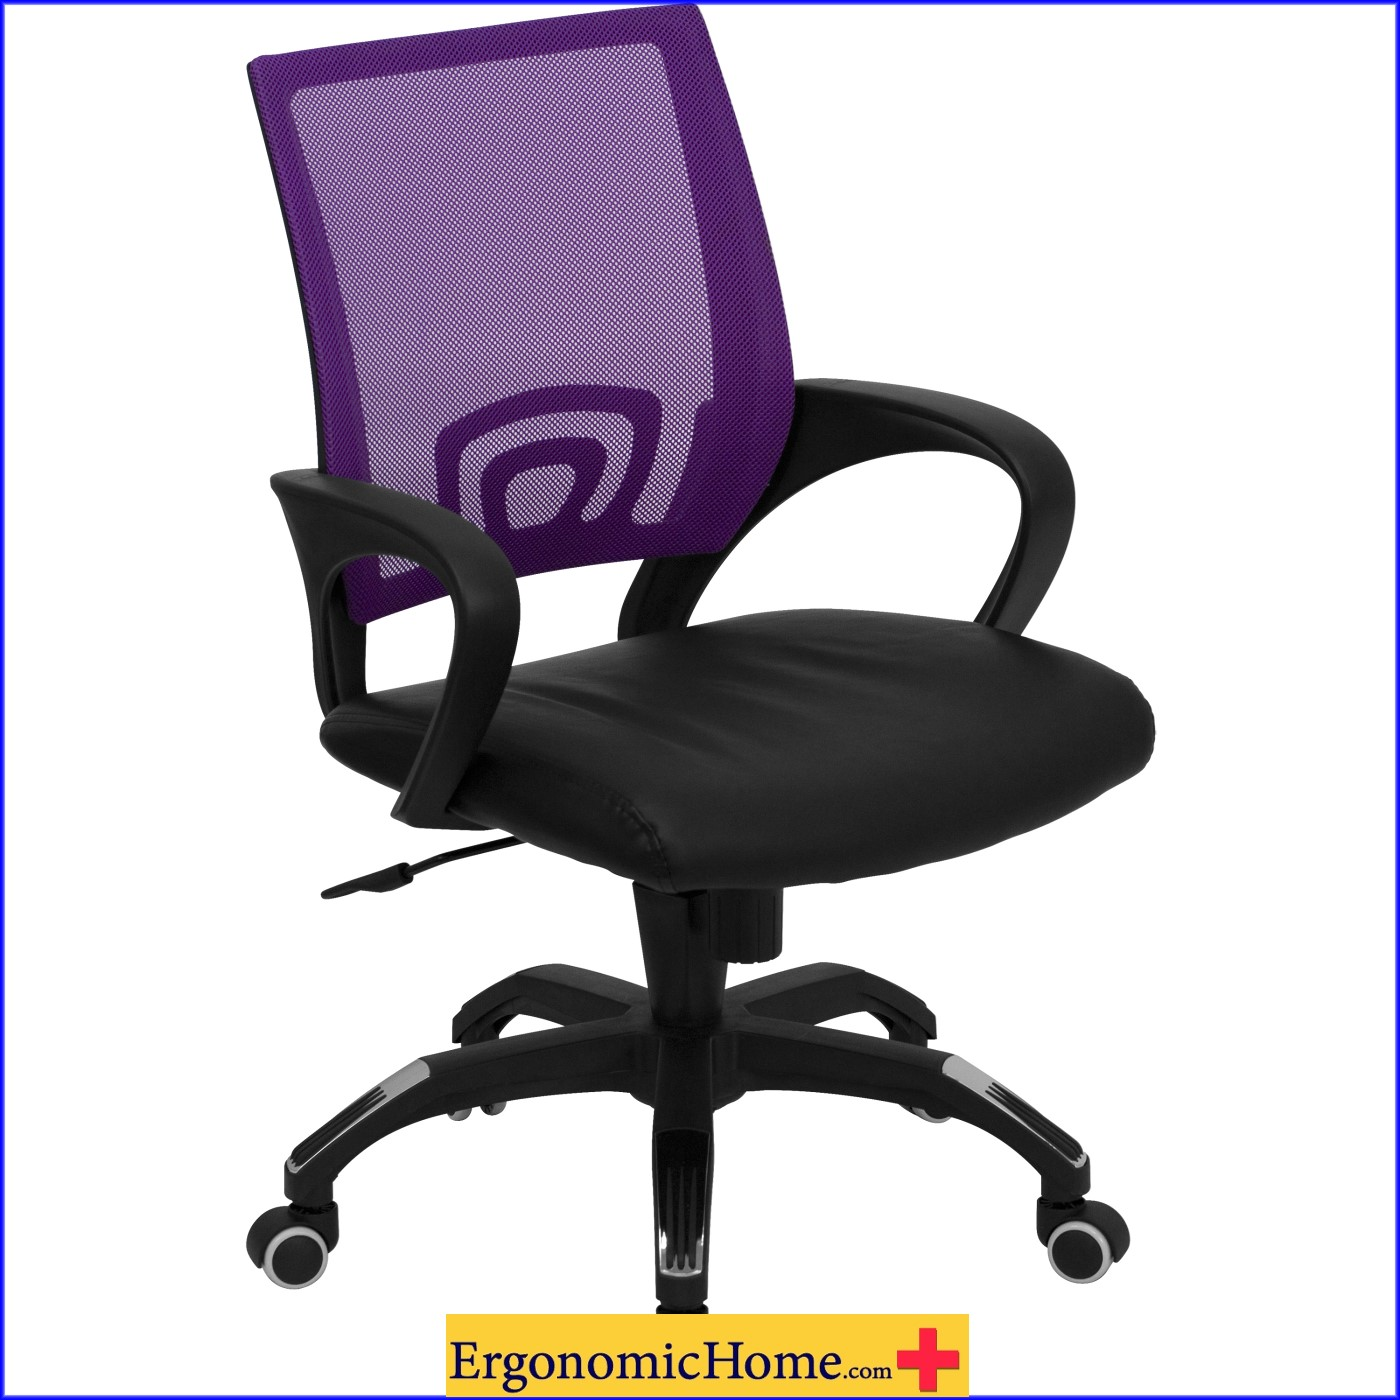 Ergonomic Home Purple Mesh Swivel Task Chair Mid-Back with Black Leather Padded Seat EH-CP-B176A01-PURPLE-GG <b><font color=green>50% Off Read More Below...</font></b>